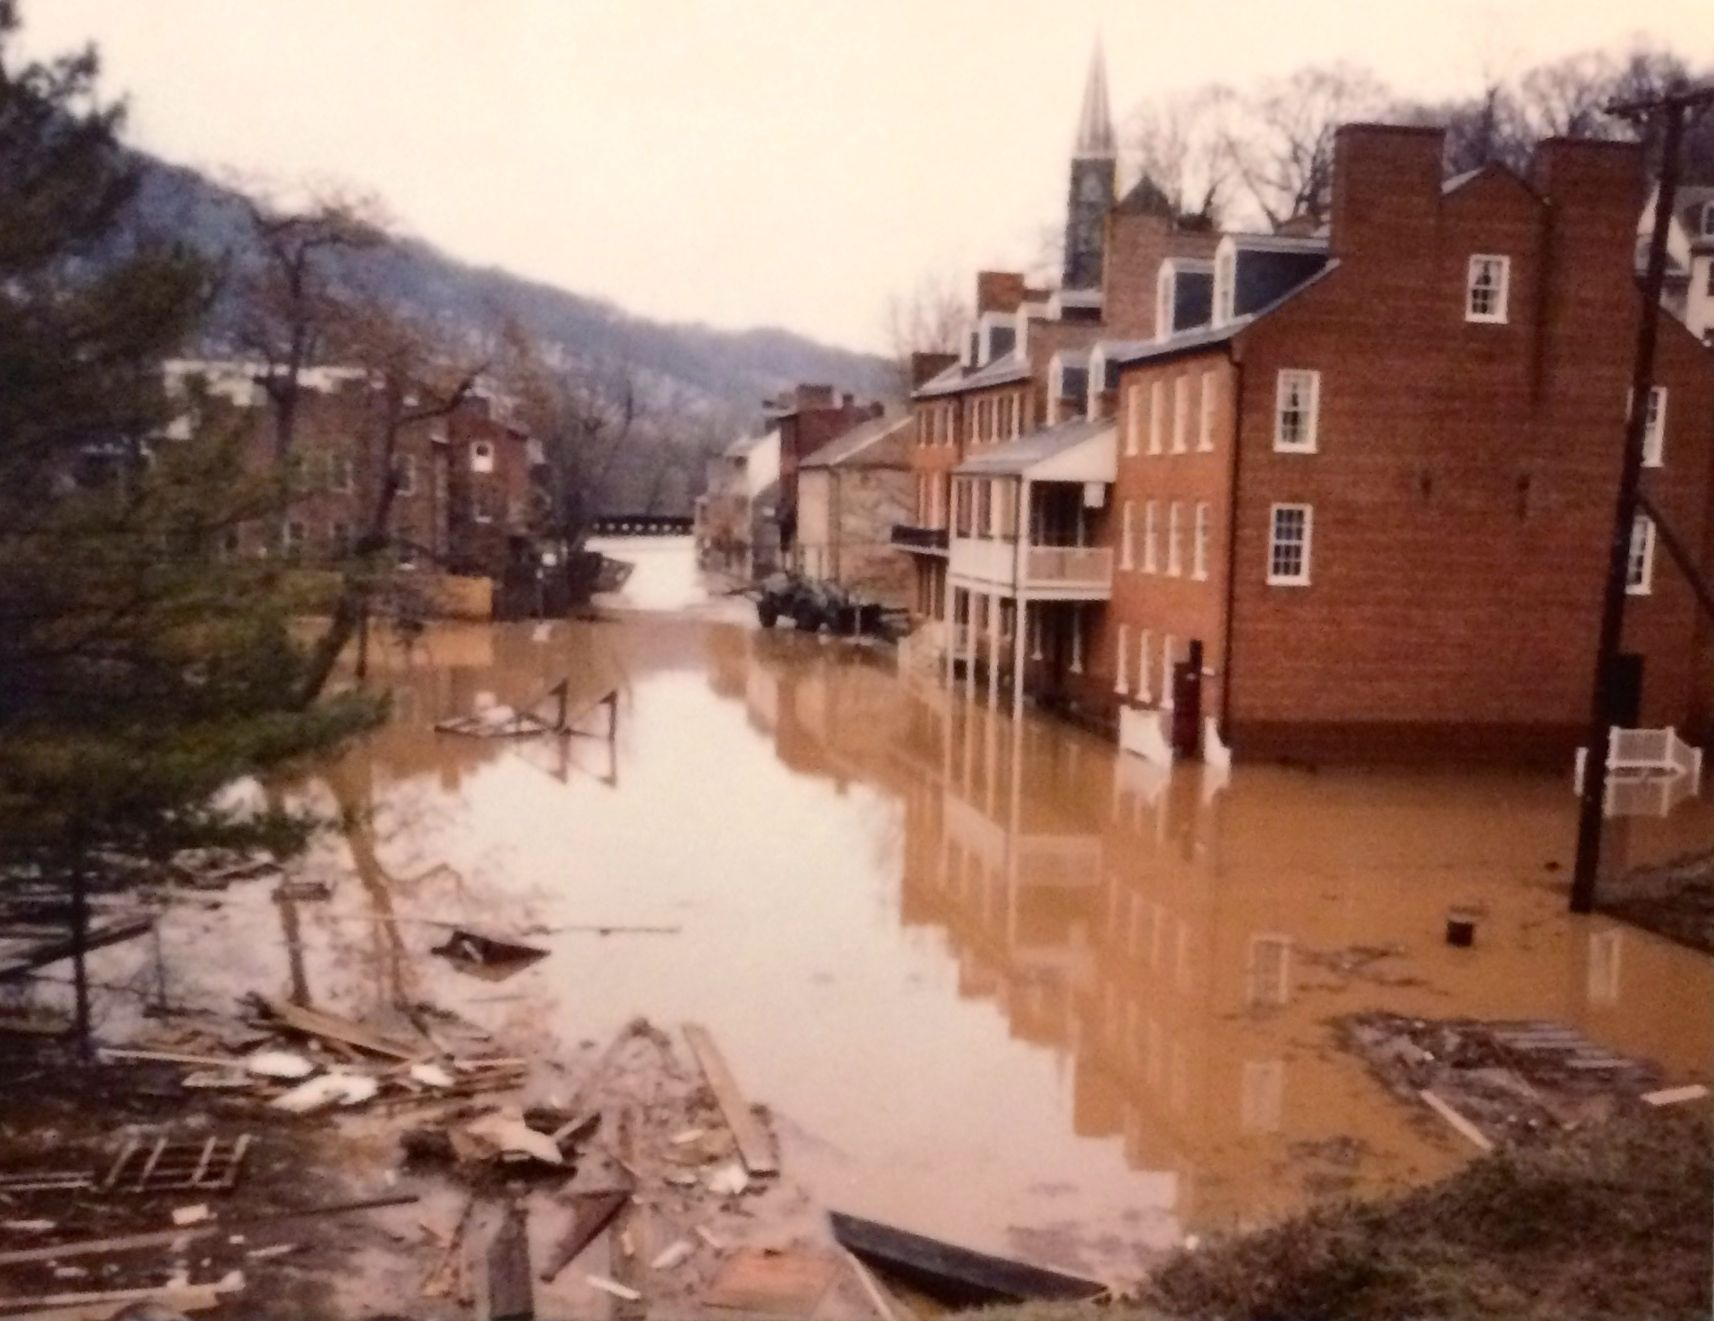 The flood of 1996